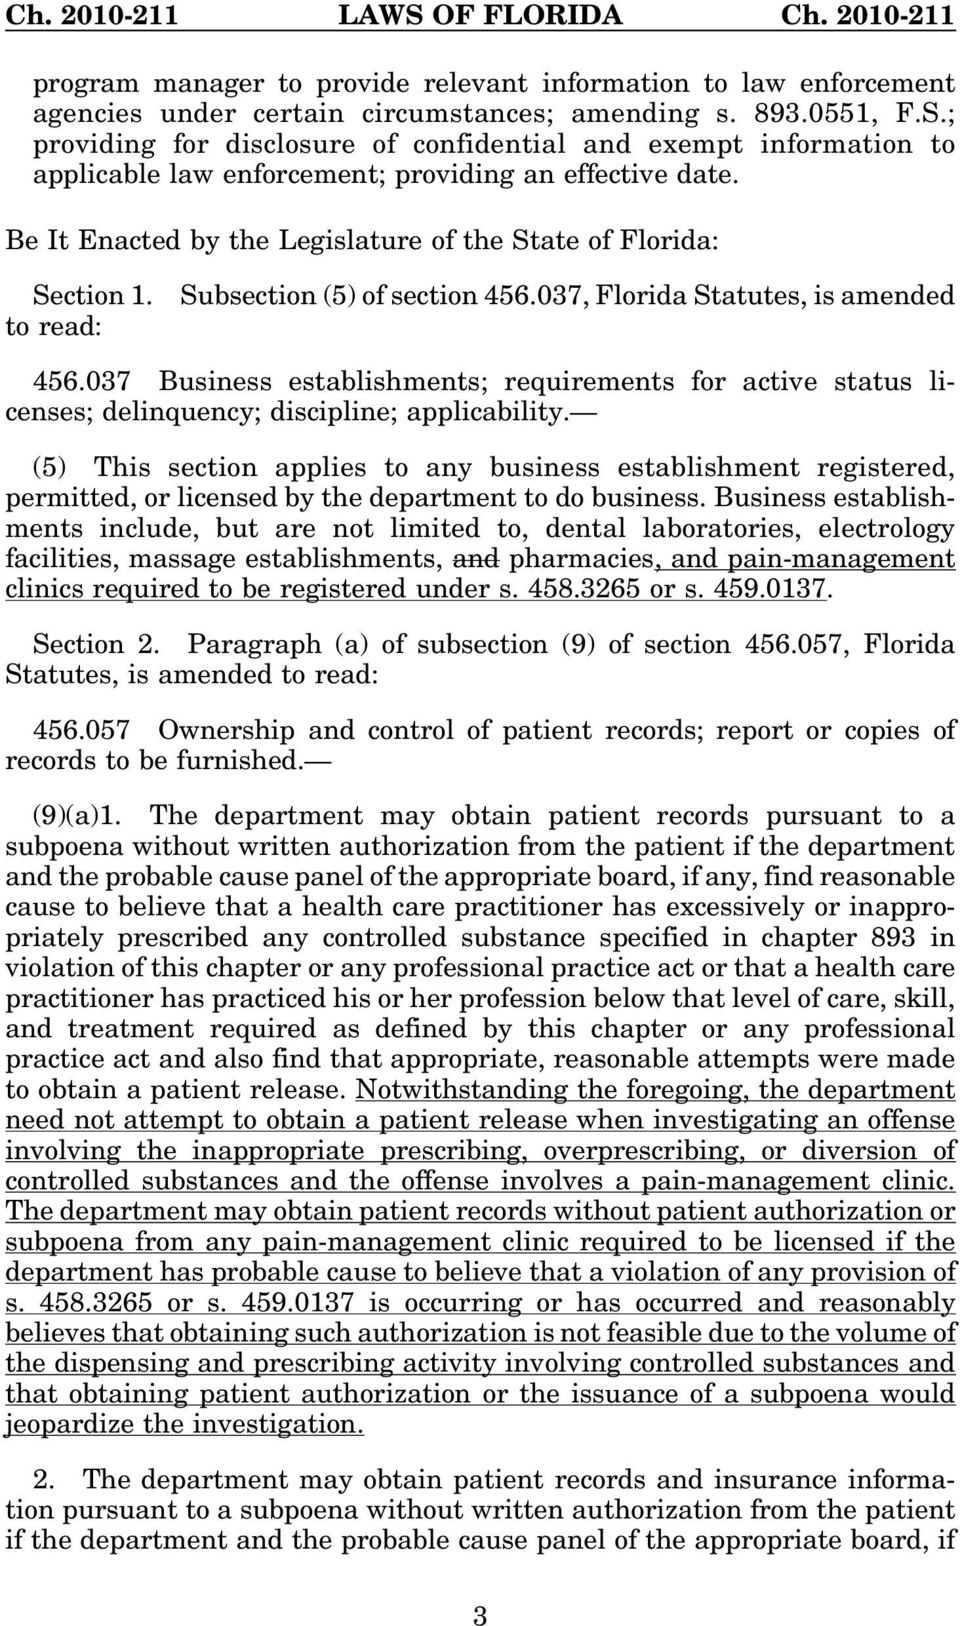 to read: Subsection (5) of section 456.037, Florida Statutes, is amended 456.037 Business establishments; requirements for active status licenses; delinquency; discipline; applicability.